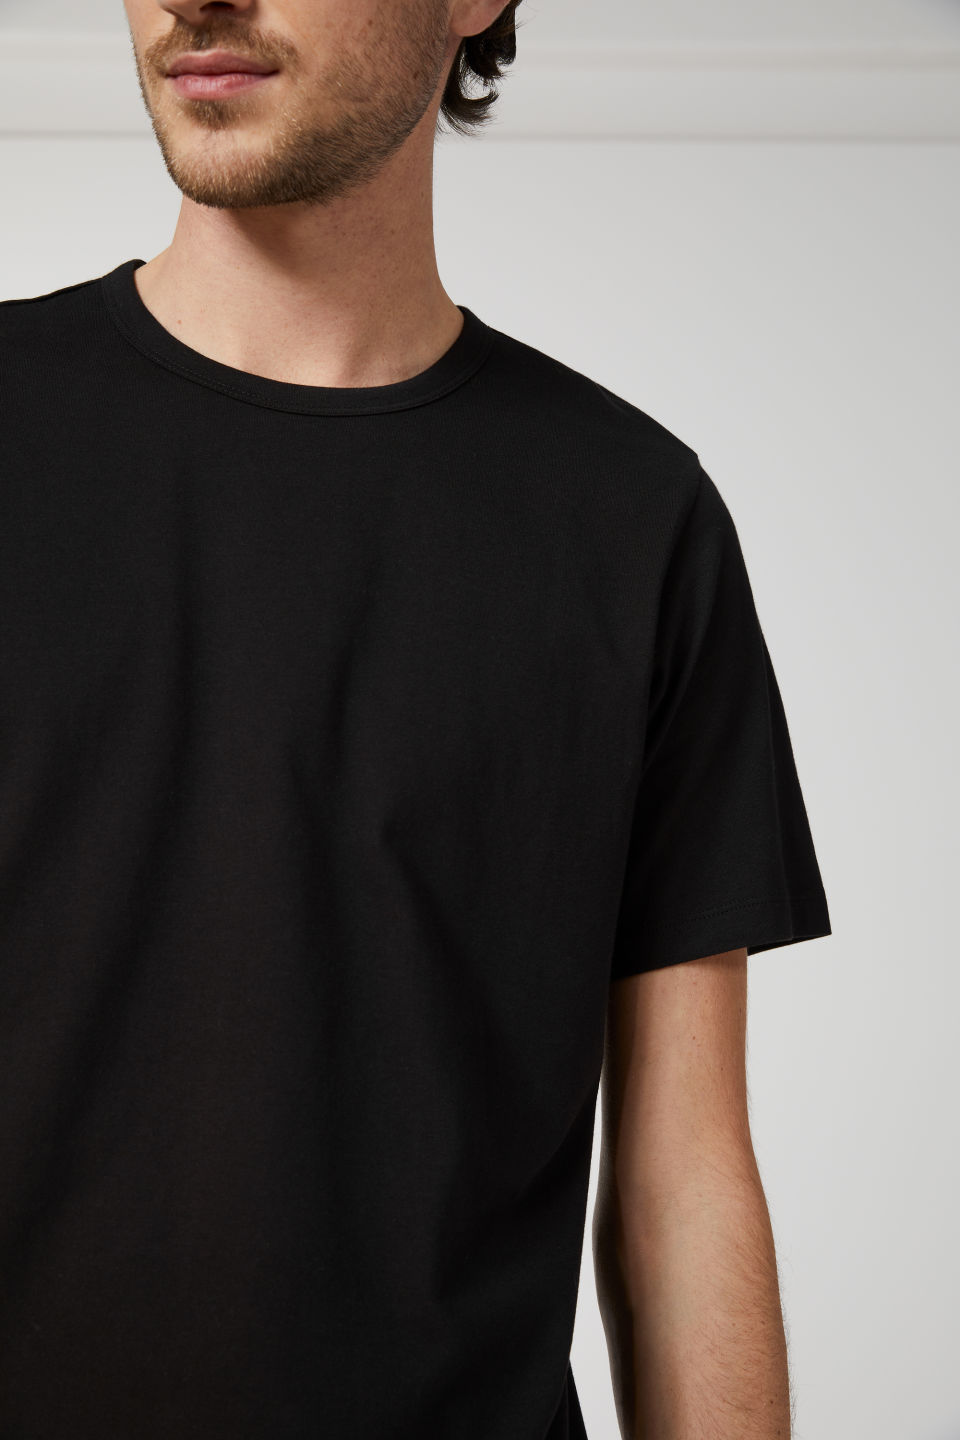 Detailed image of Arket 150 gsm pima cotton t-shirt in black